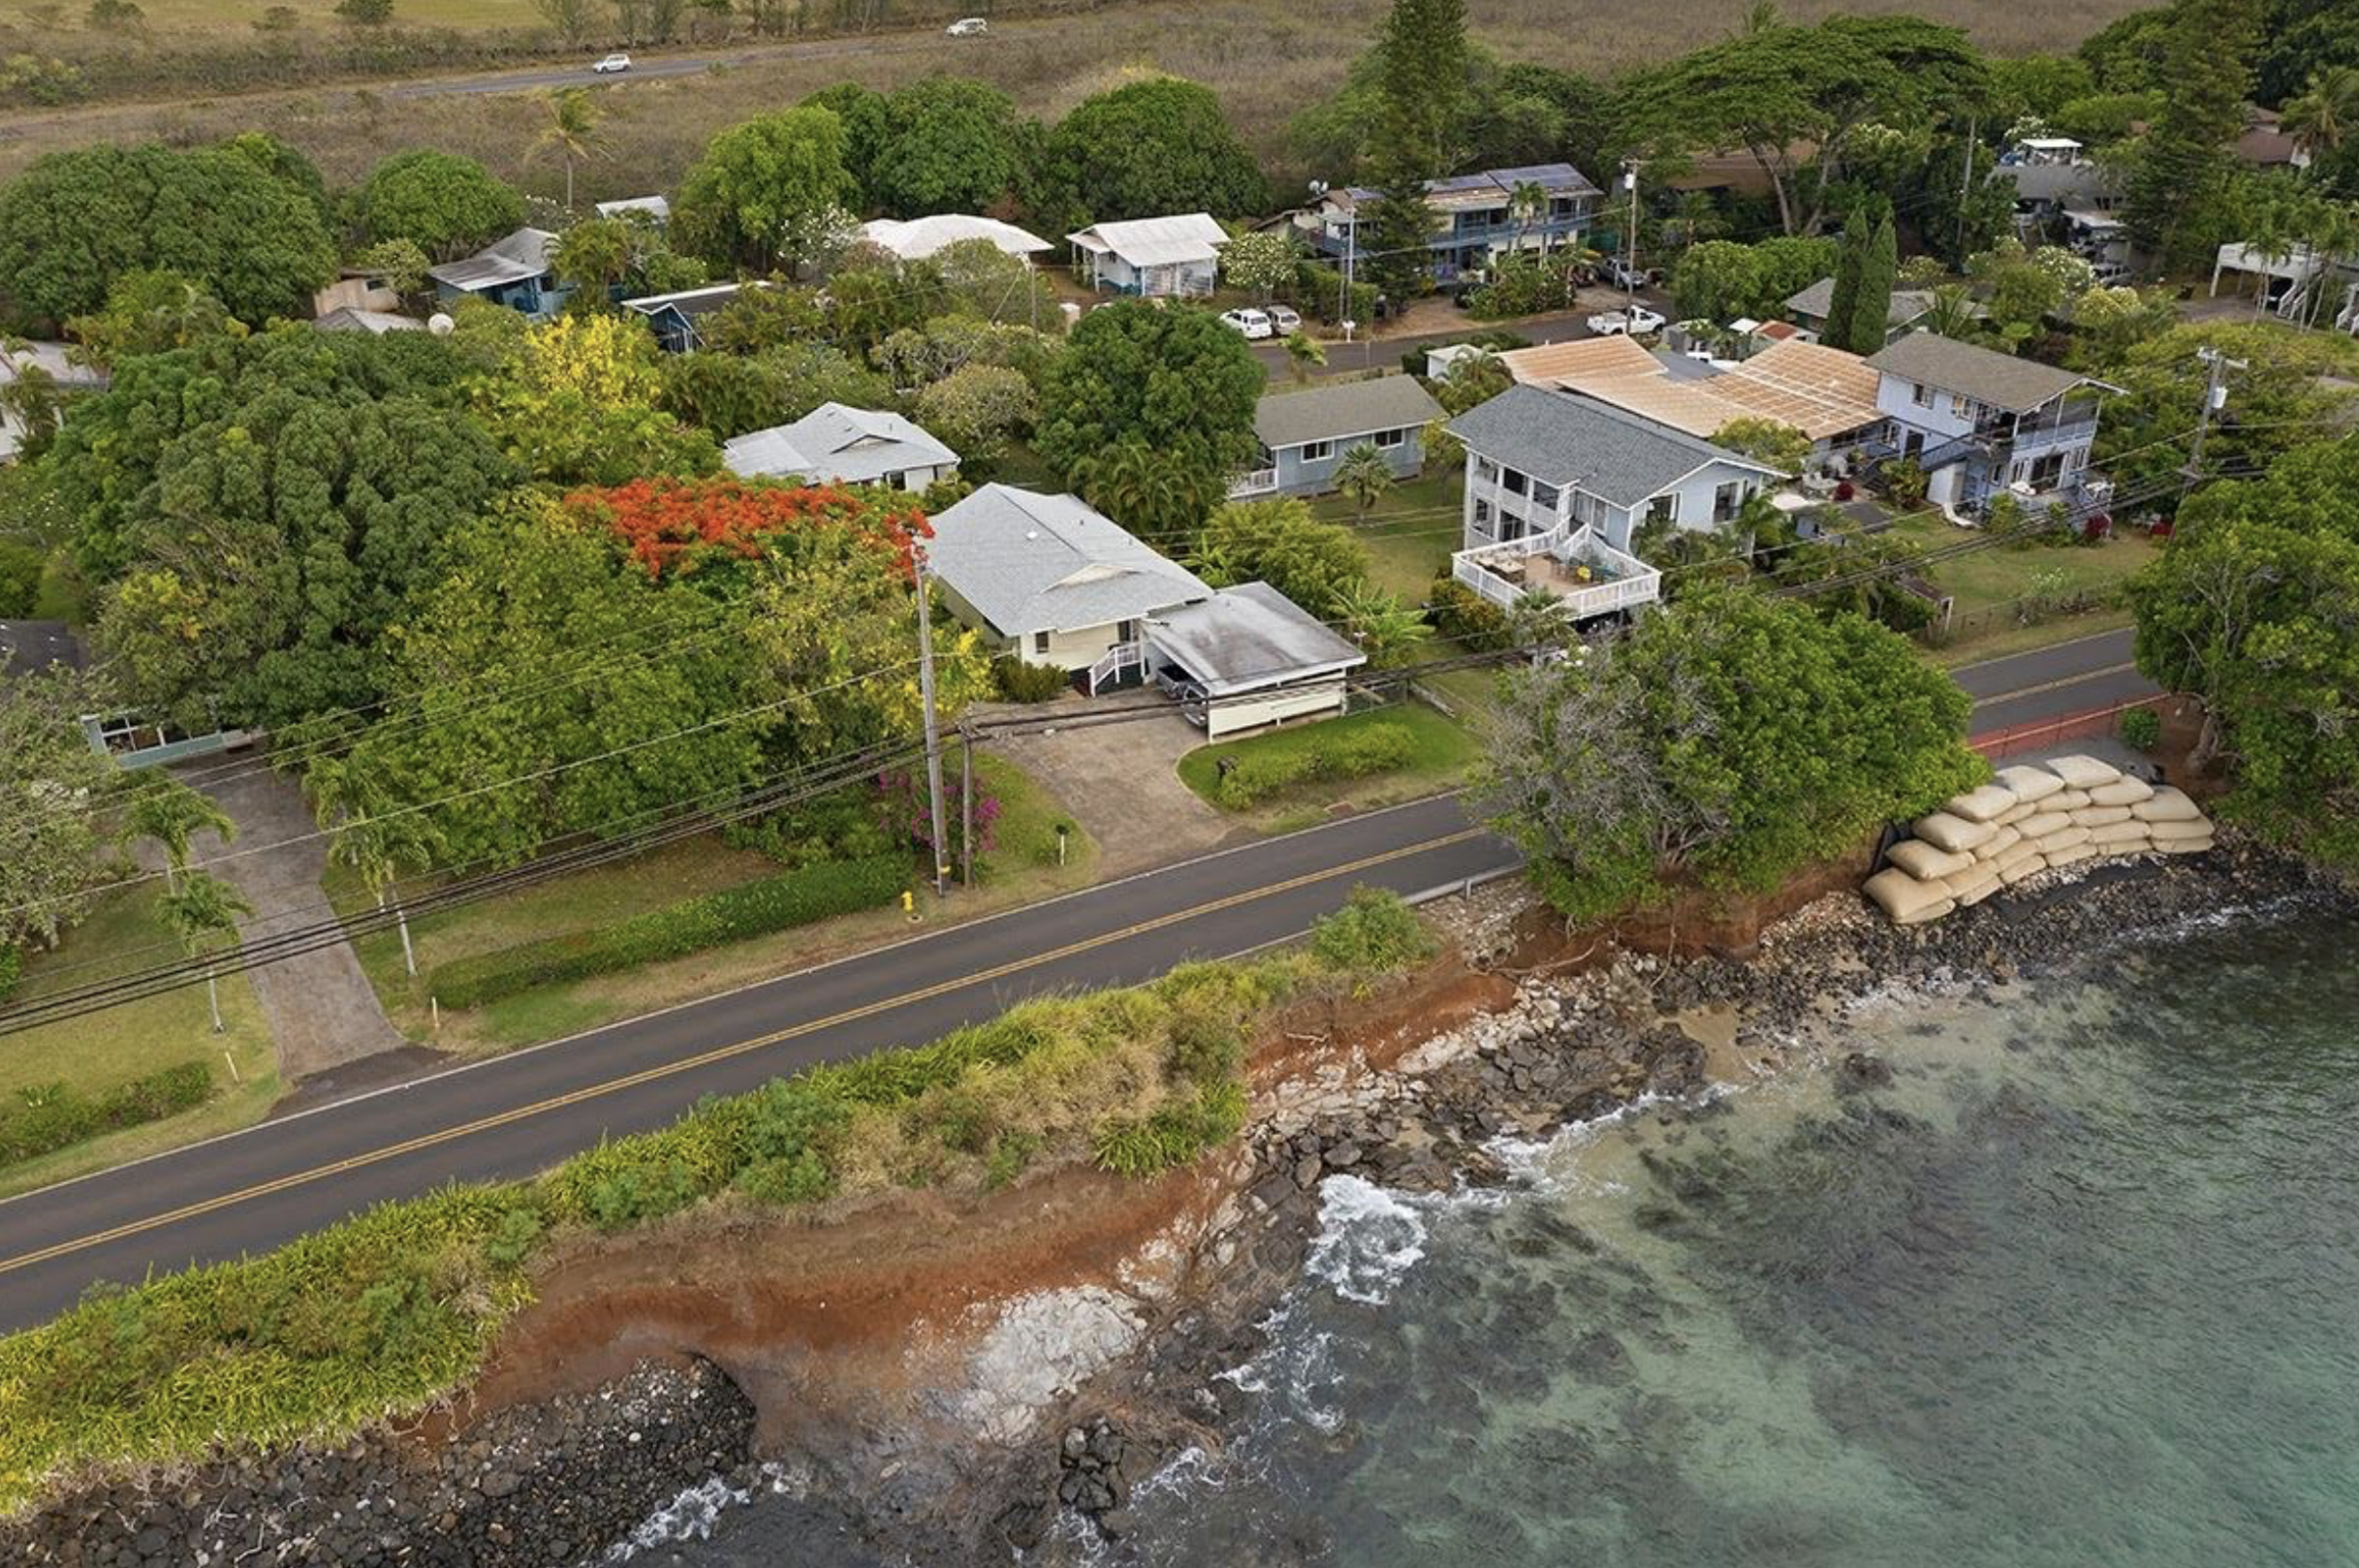 Maui County Files Suit Against Fossil Fuel Companies for Costs of Surviving Climate Change